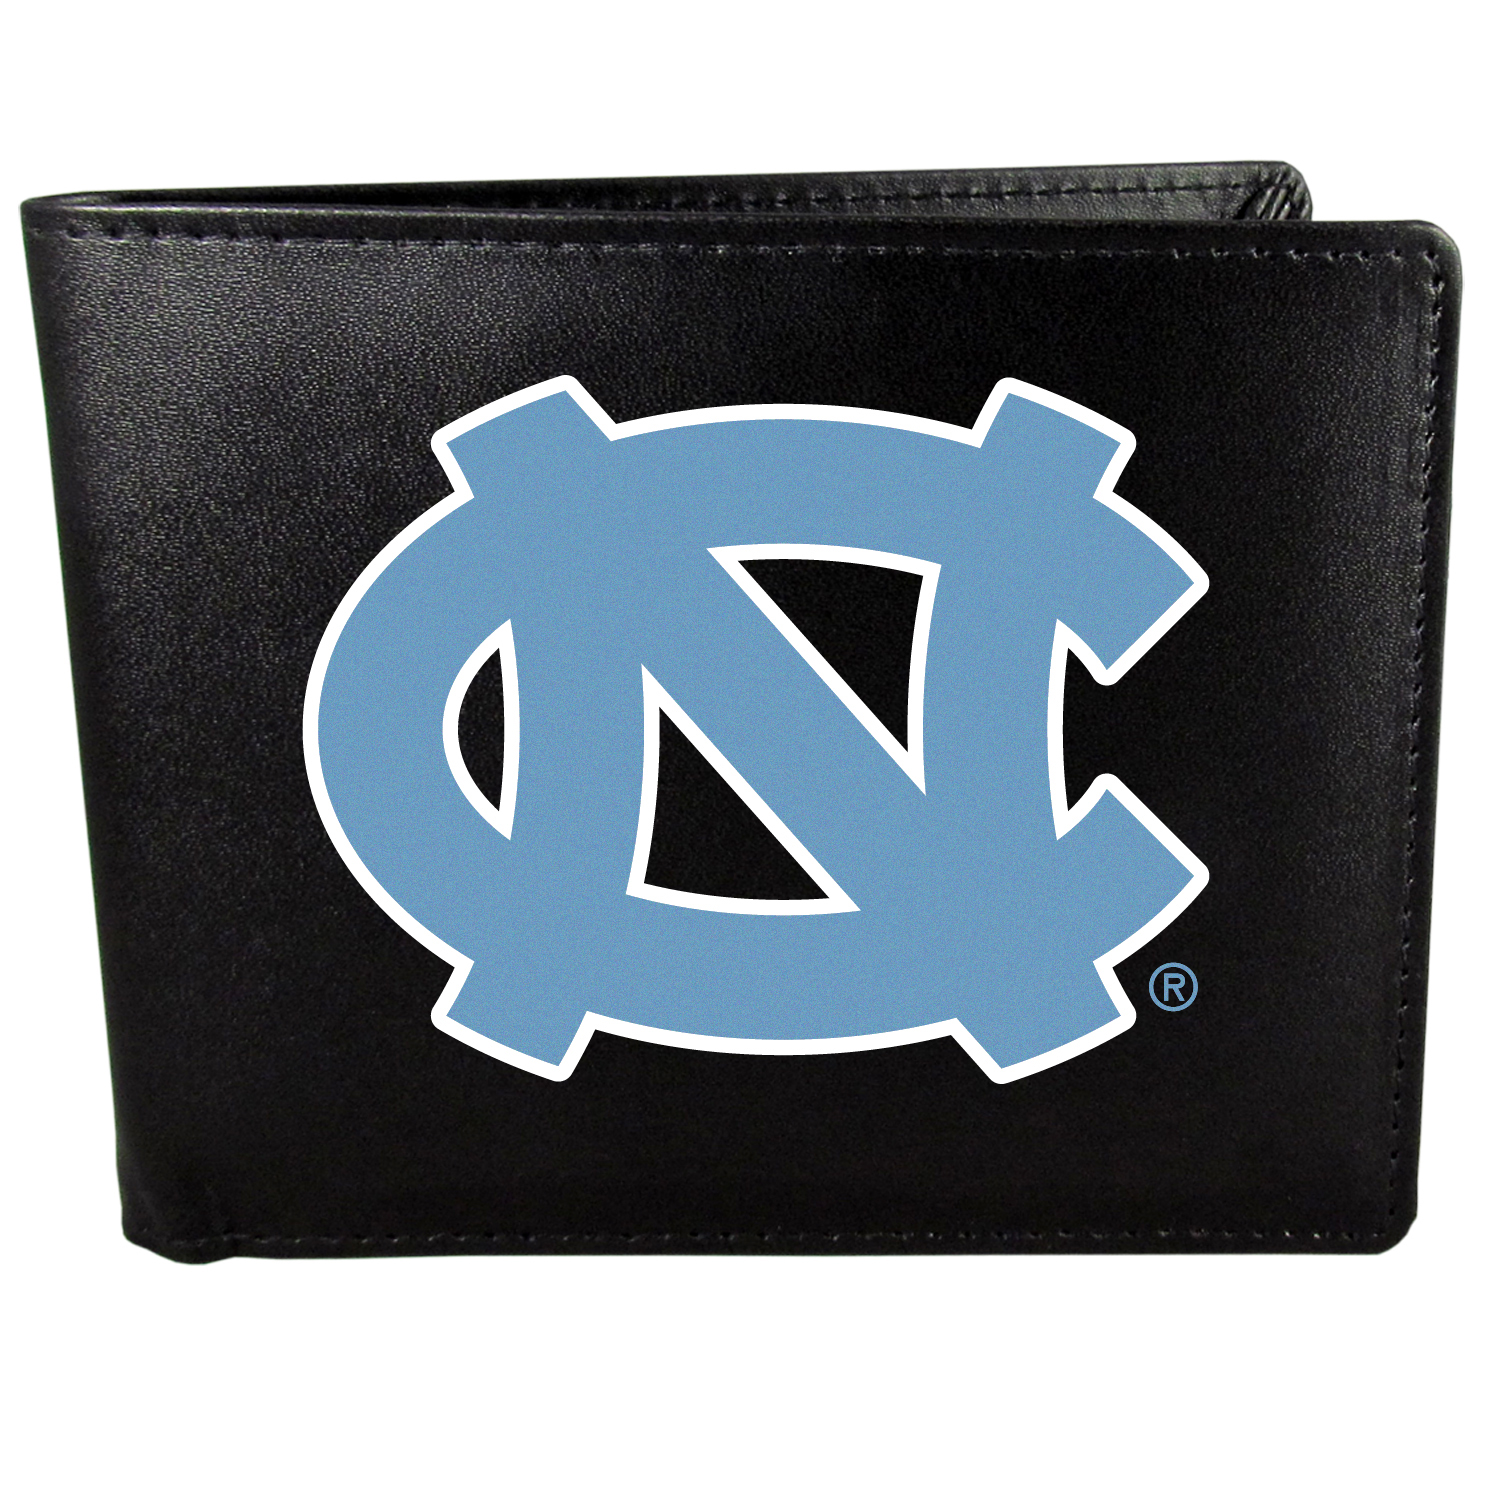 N. Carolina Tar Heels Bi-fold Wallet Large Logo - Sports fans do not have to sacrifice style with this classic bi-fold wallet that sports the N. Carolina Tar Heels extra large logo. This men's fashion accessory has a leather grain look and expert craftmanship for a quality wallet at a great price. The wallet features inner credit card slots, windowed ID slot and a large billfold pocket. The front of the wallet features a printed team logo.